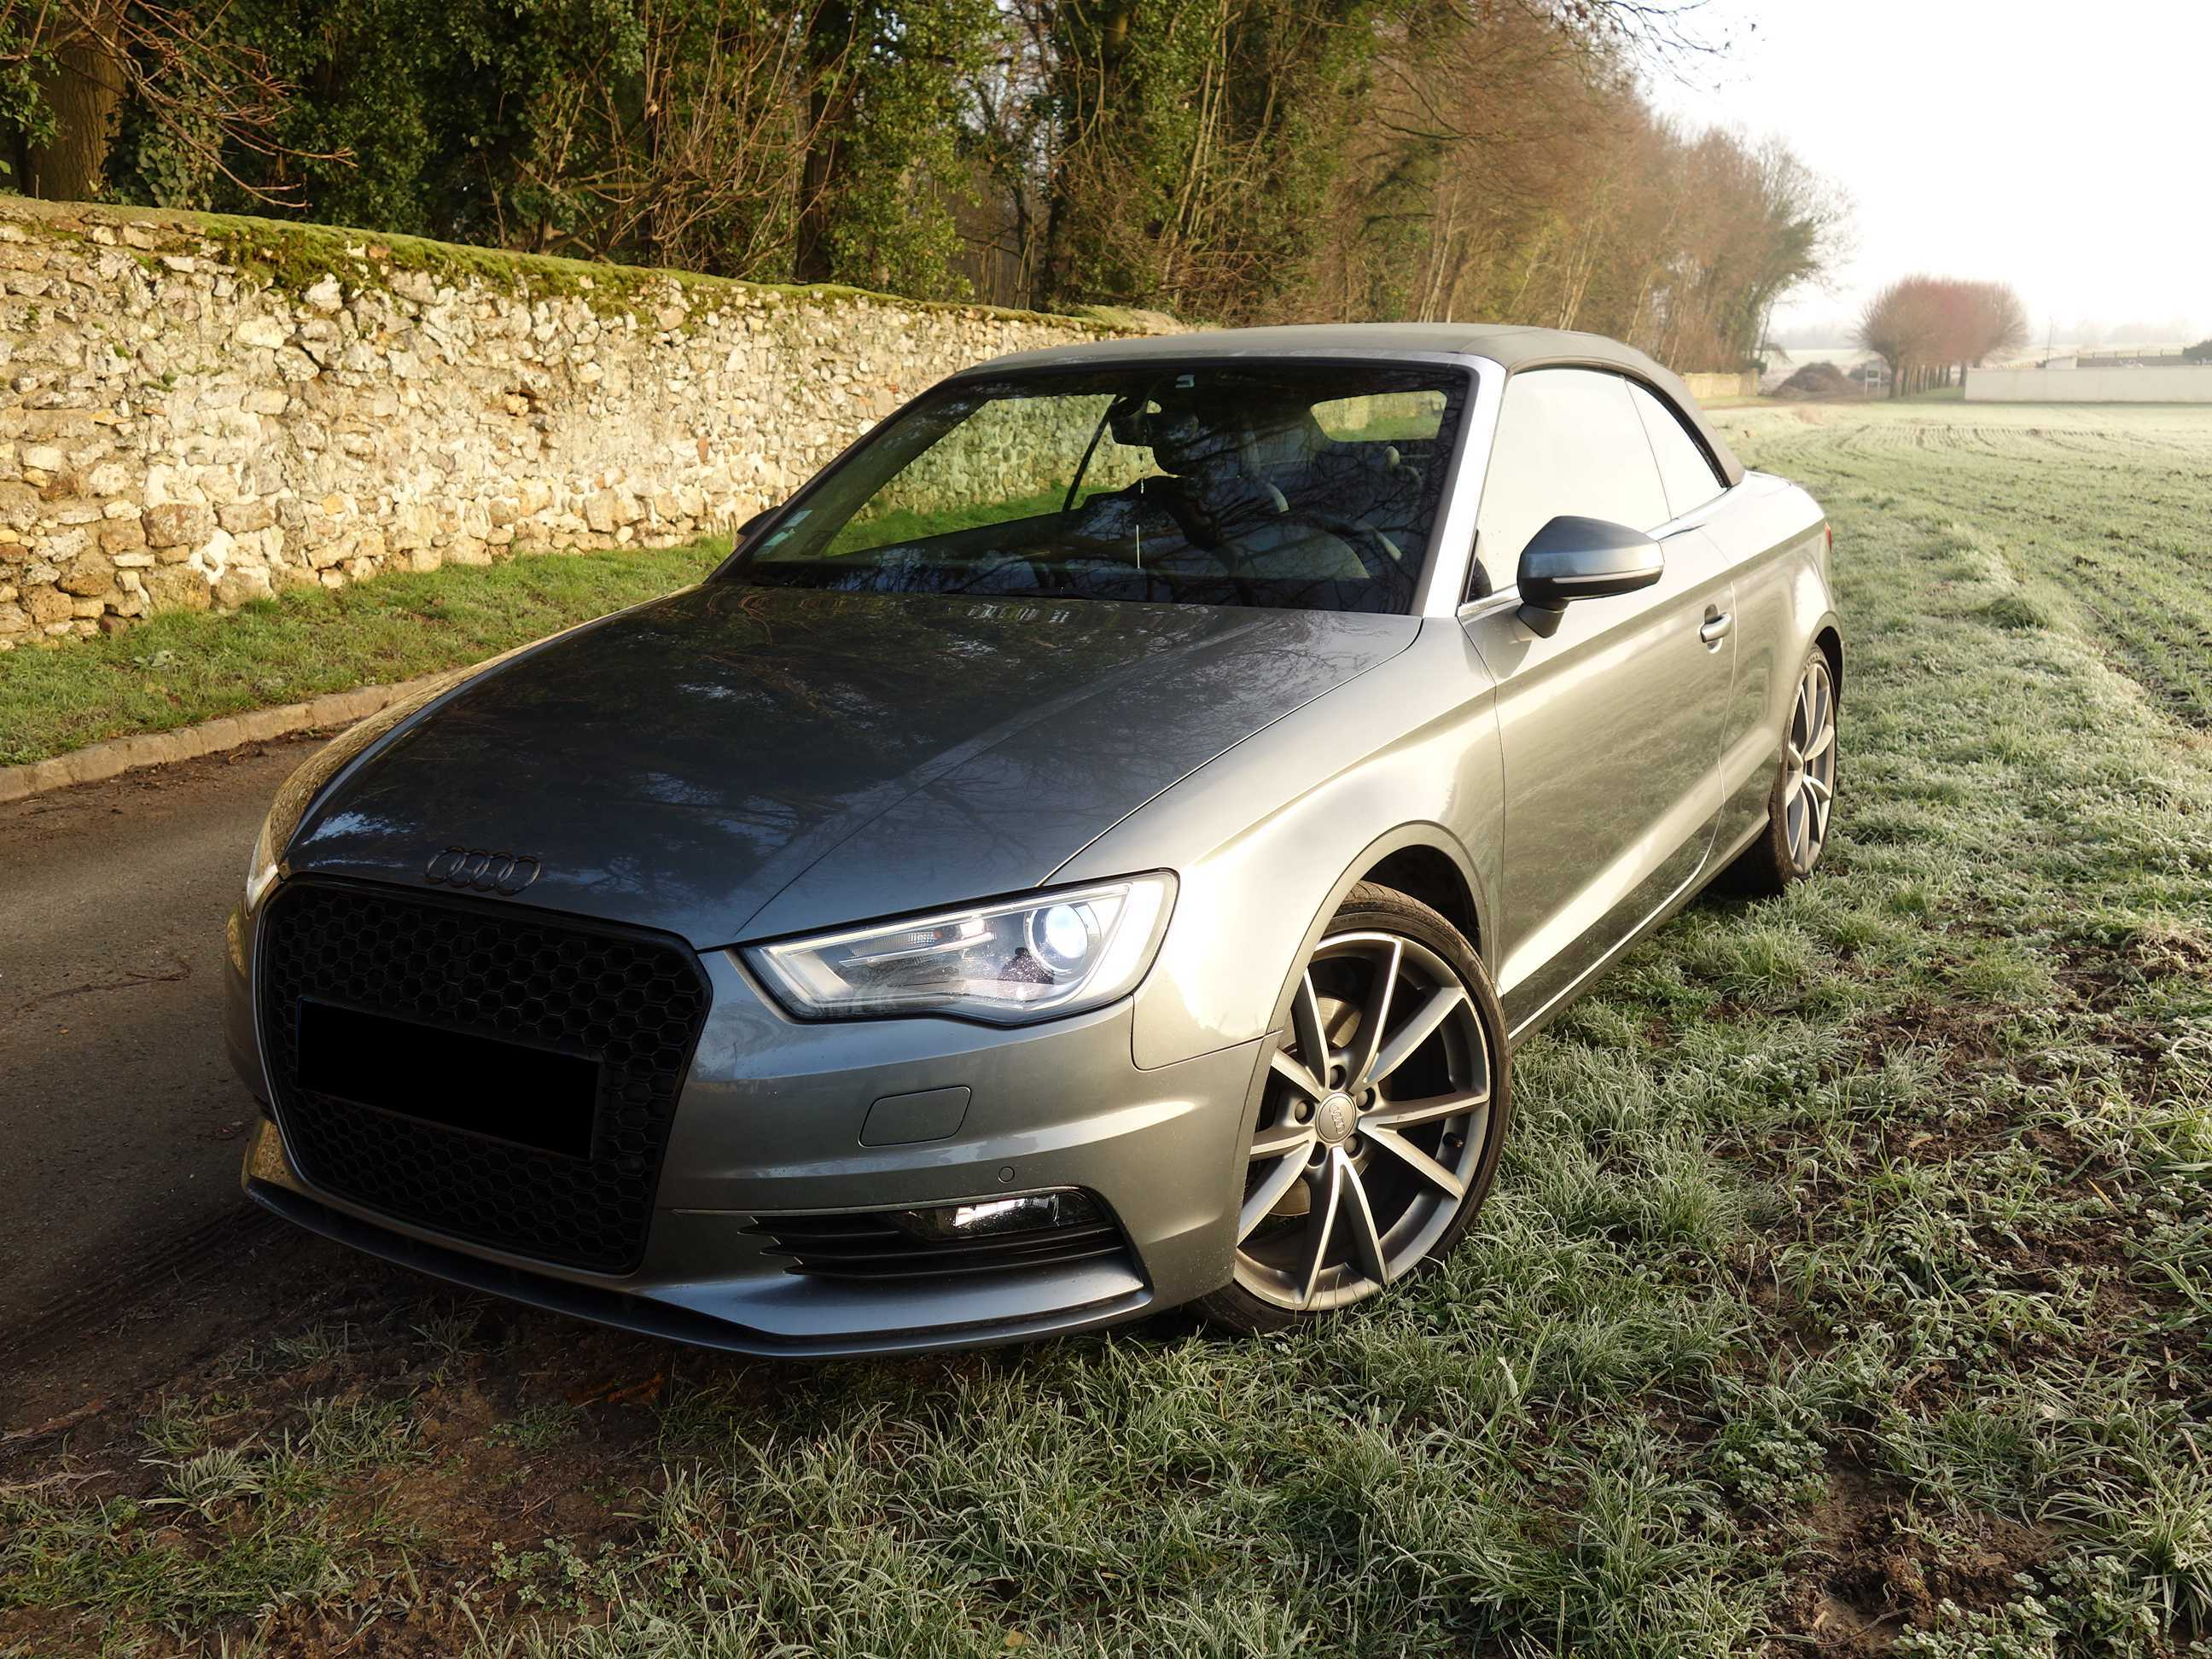 Audi A3 Cabriolet 2.0 TDI 184 S-tronic Quattro Ambition Luxe